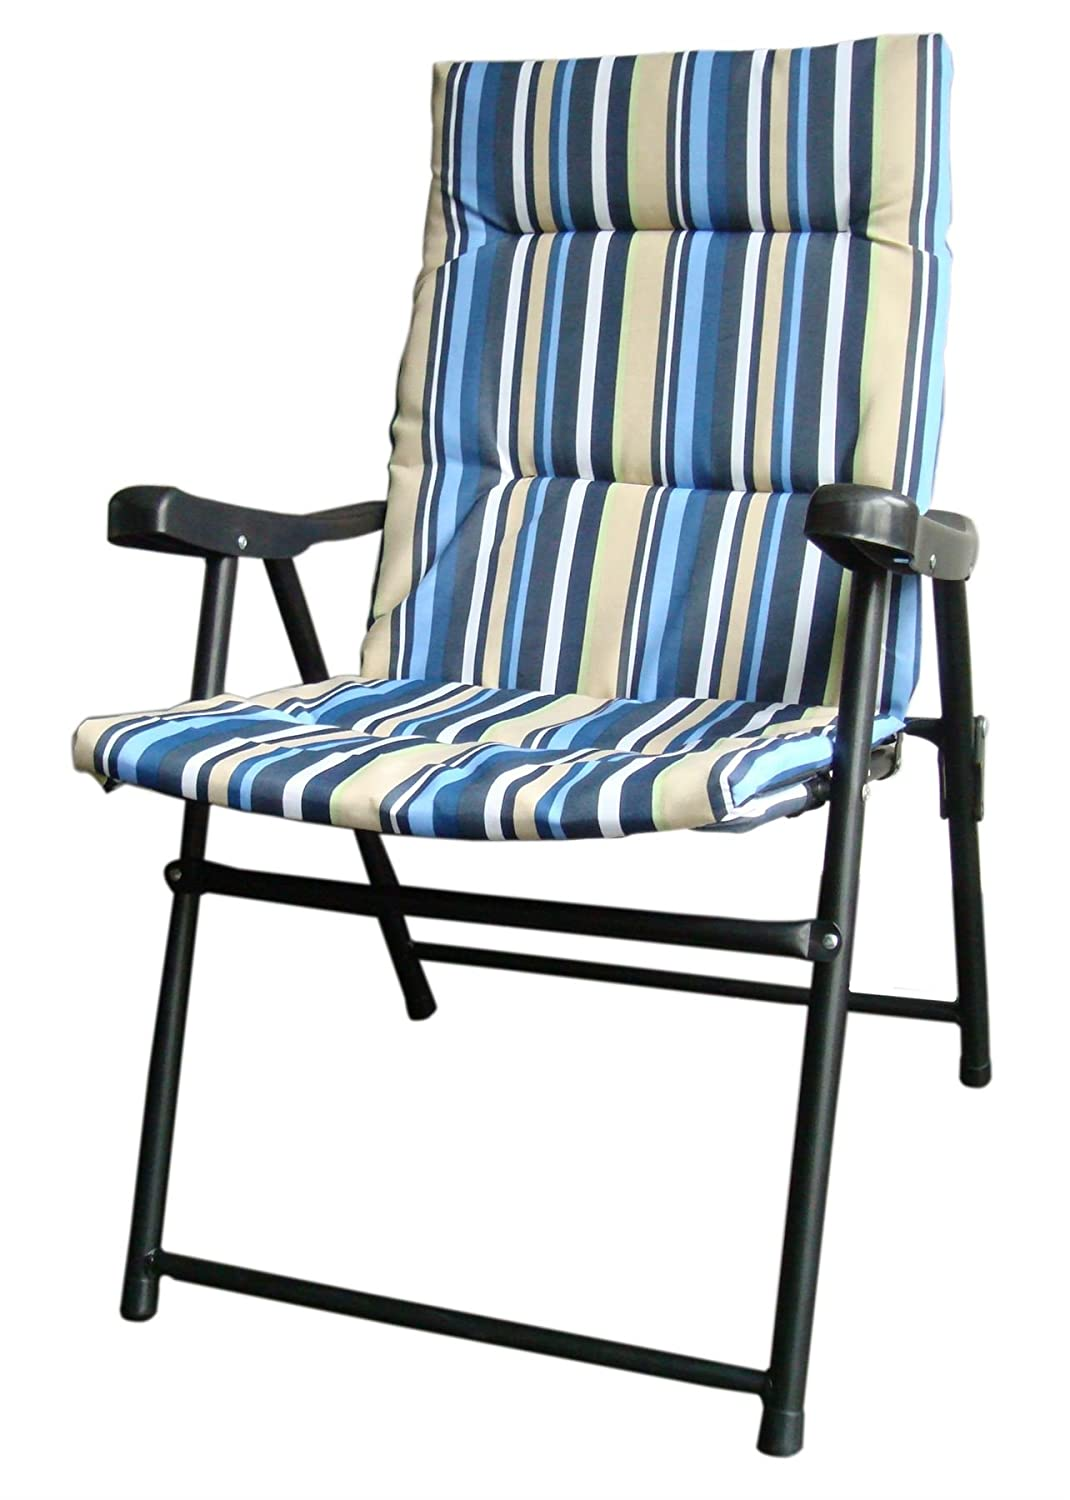 remodel folding with barstools additional about foldable garden chairs chair great and stunning